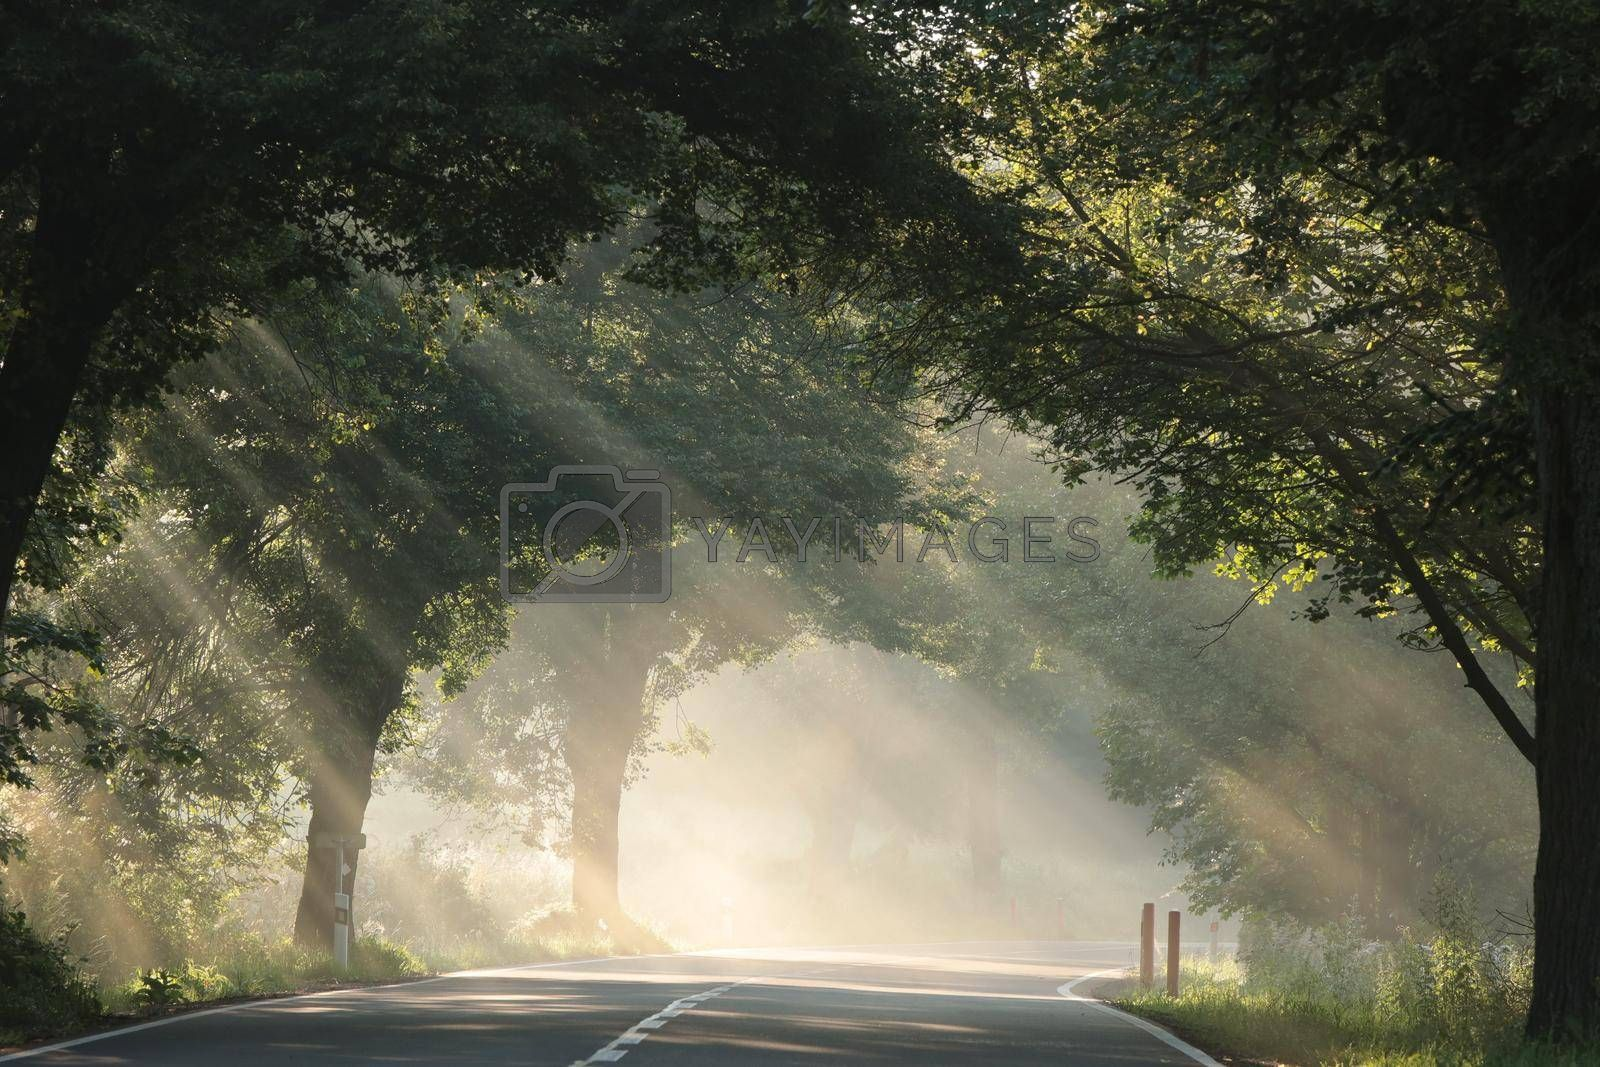 Rays of sun between trees along the road on a foggy morning.